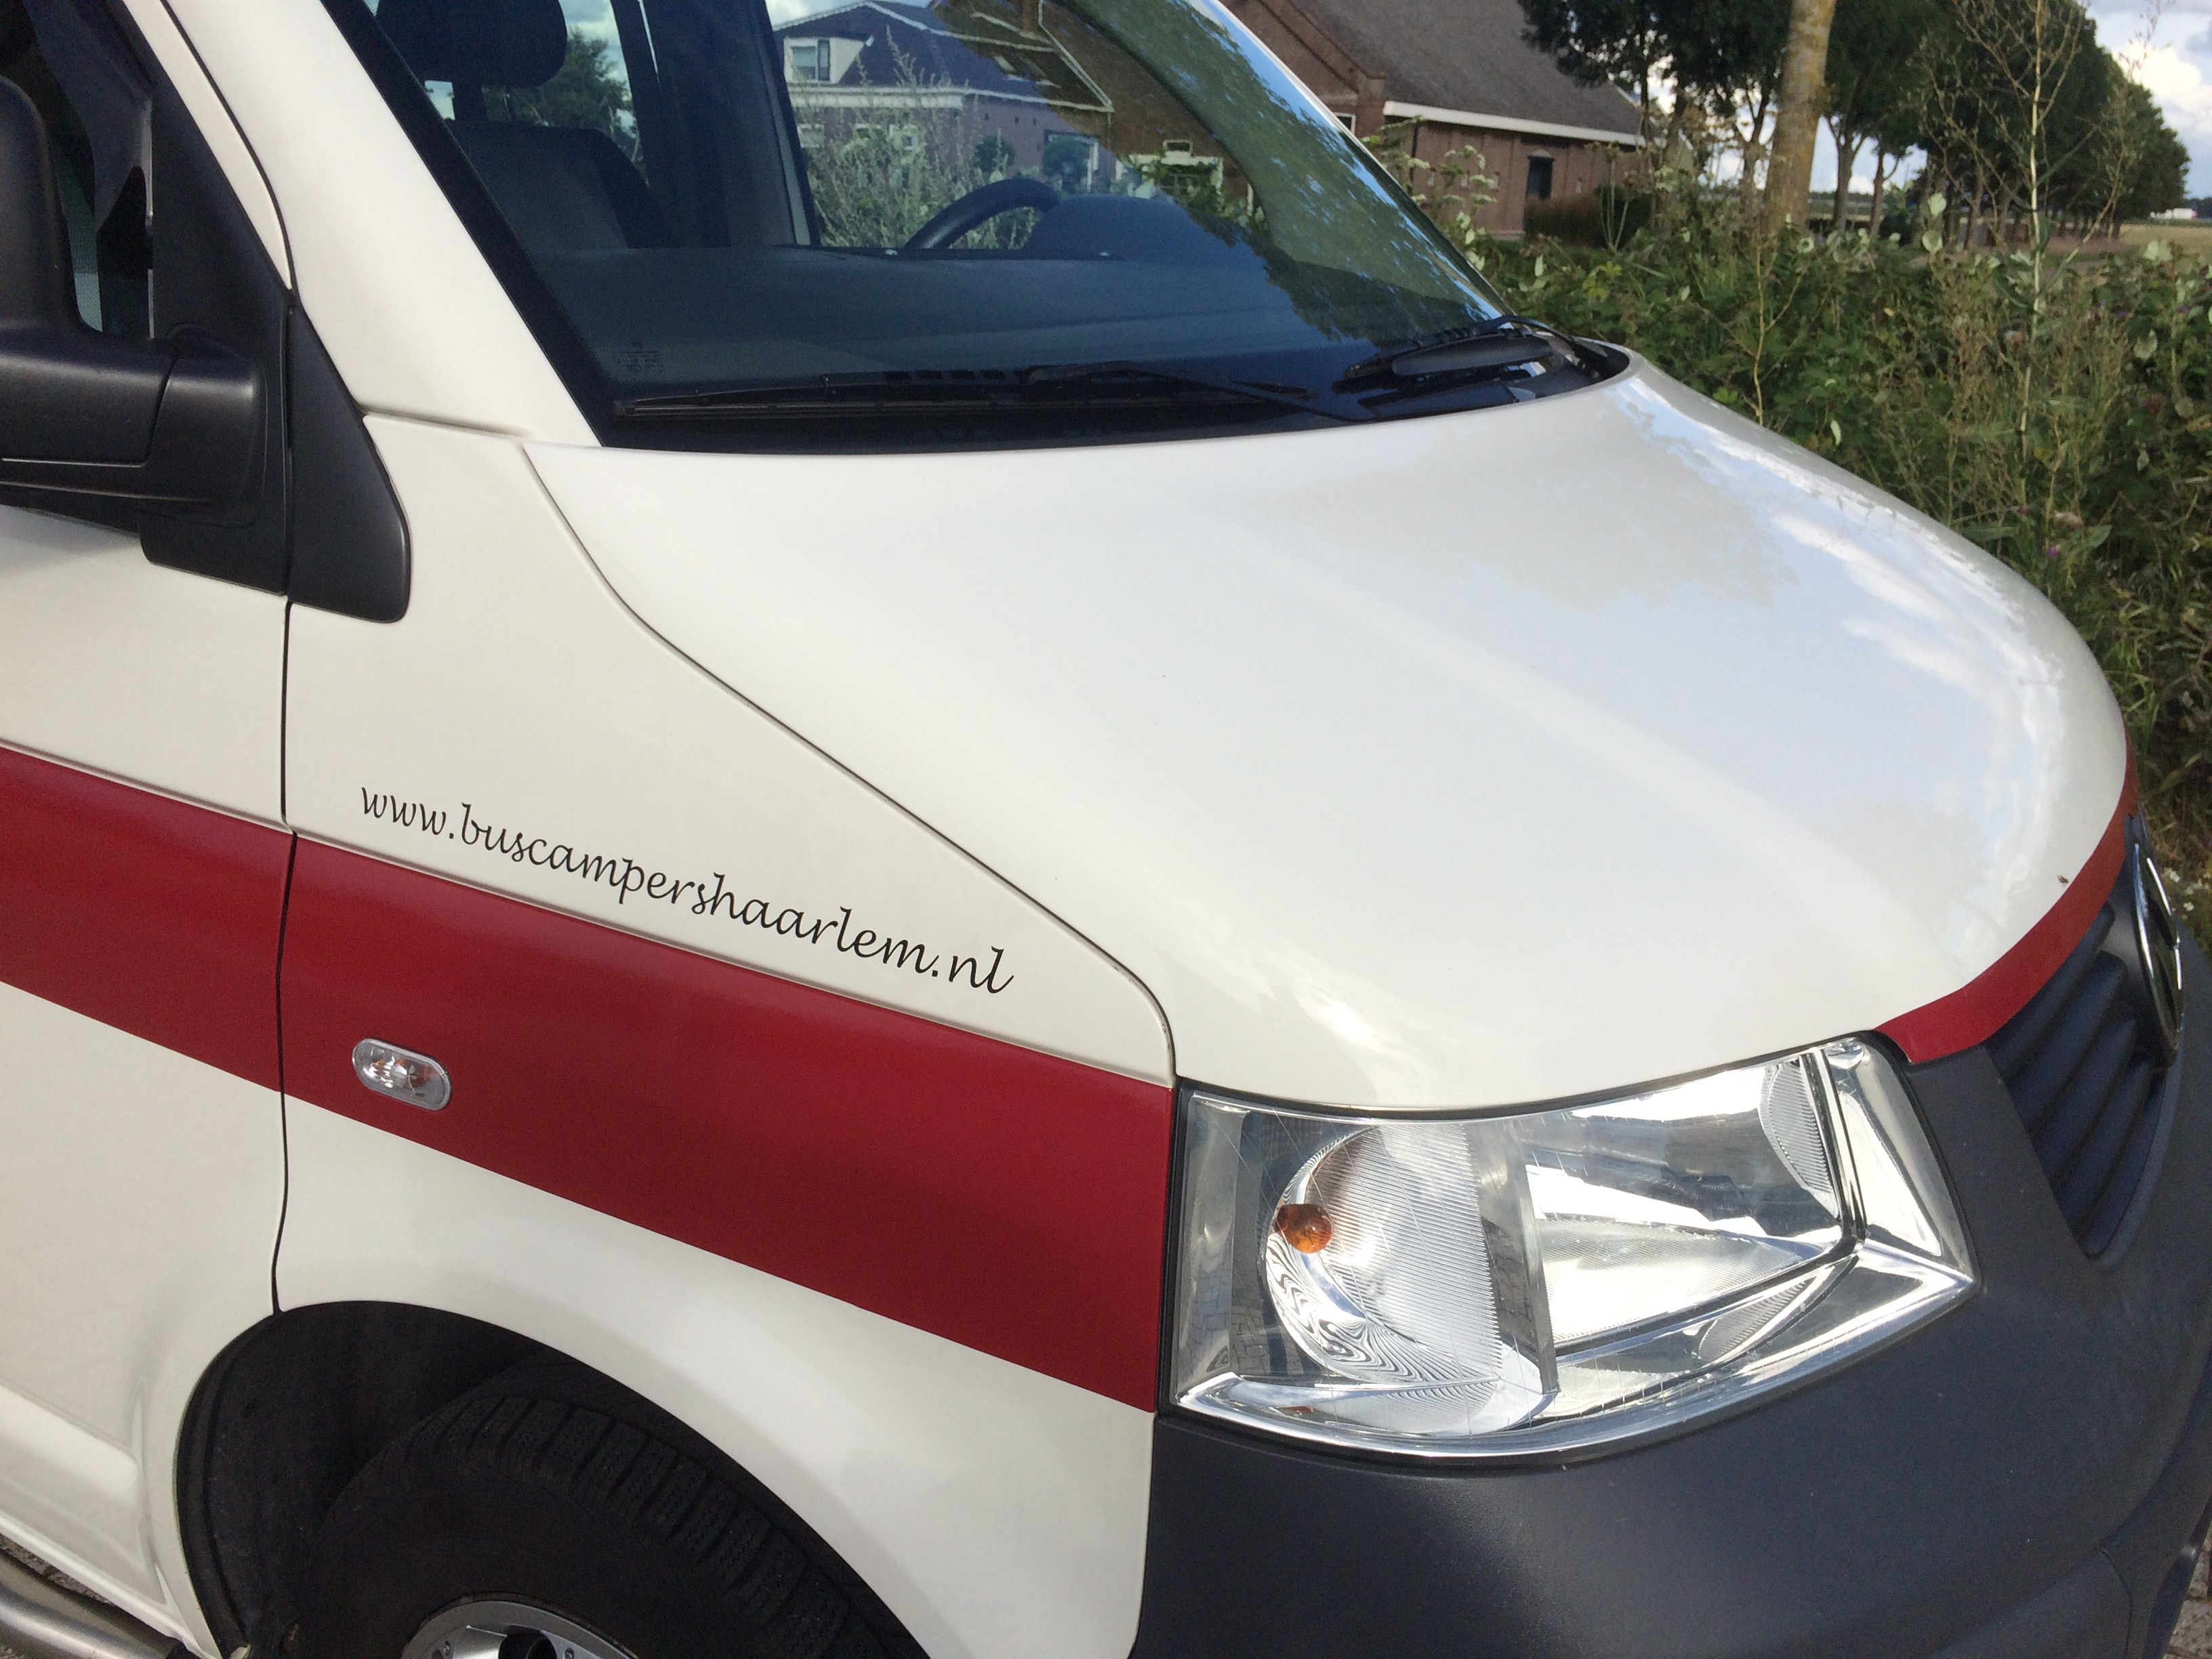 Carwrapping - kleuraccent